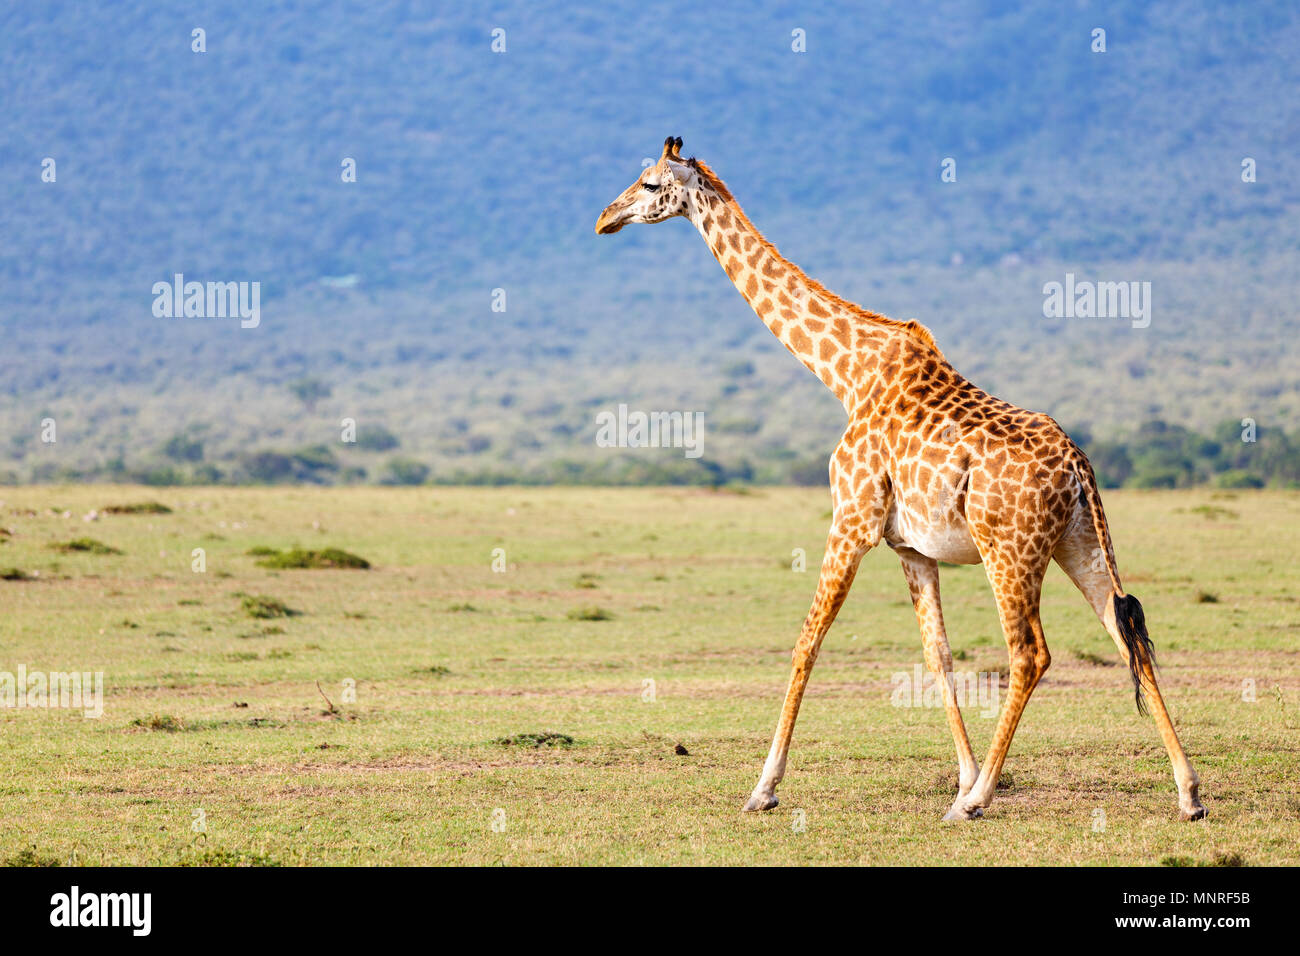 Girafe parc safari Masai Mara au Kenya Afrique Photo Stock